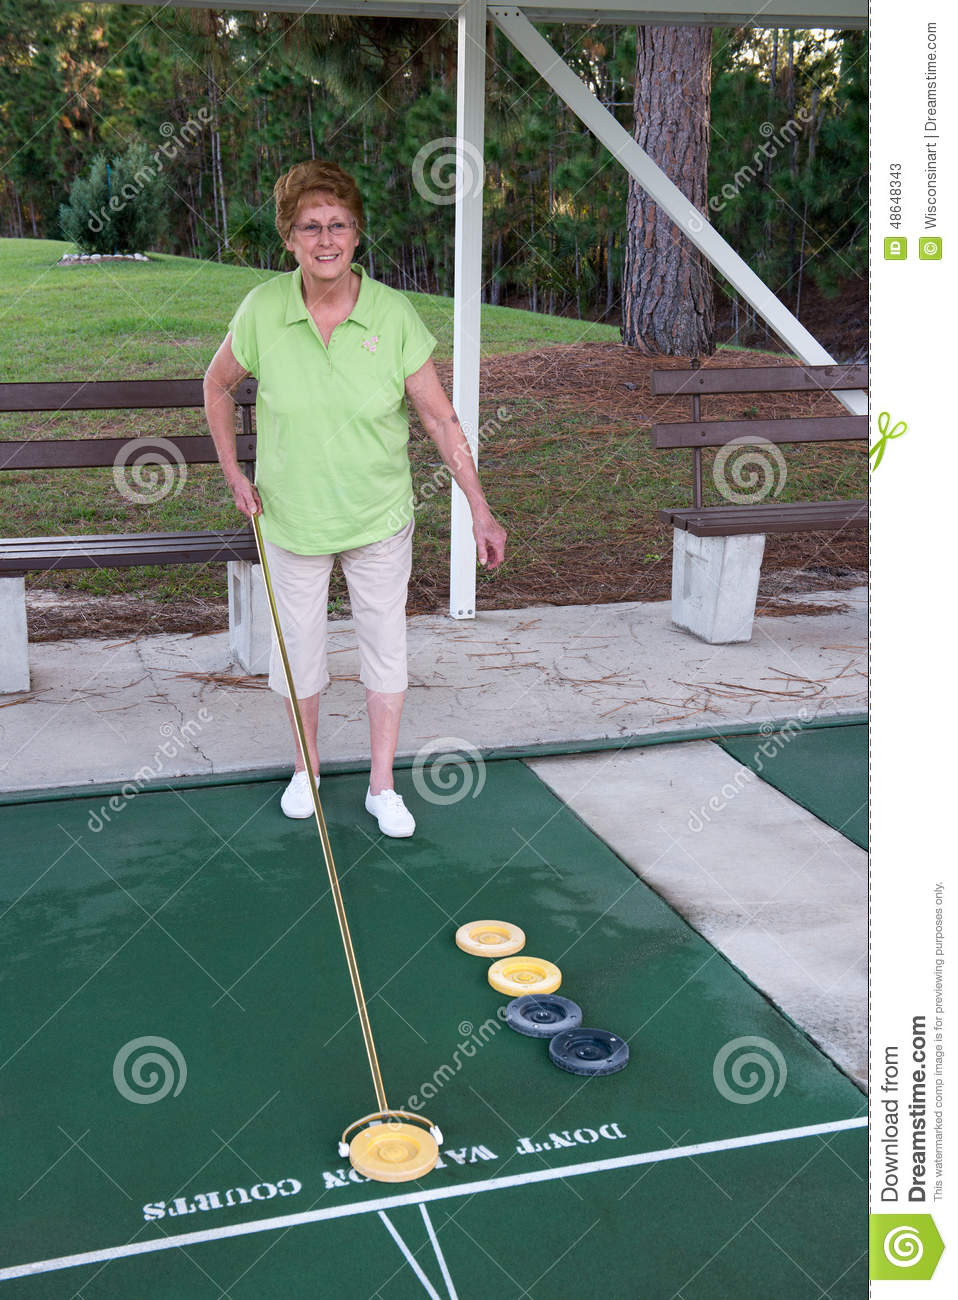 Shuffleboard Area For Senior Citizens Only Funny Sign Old Photo